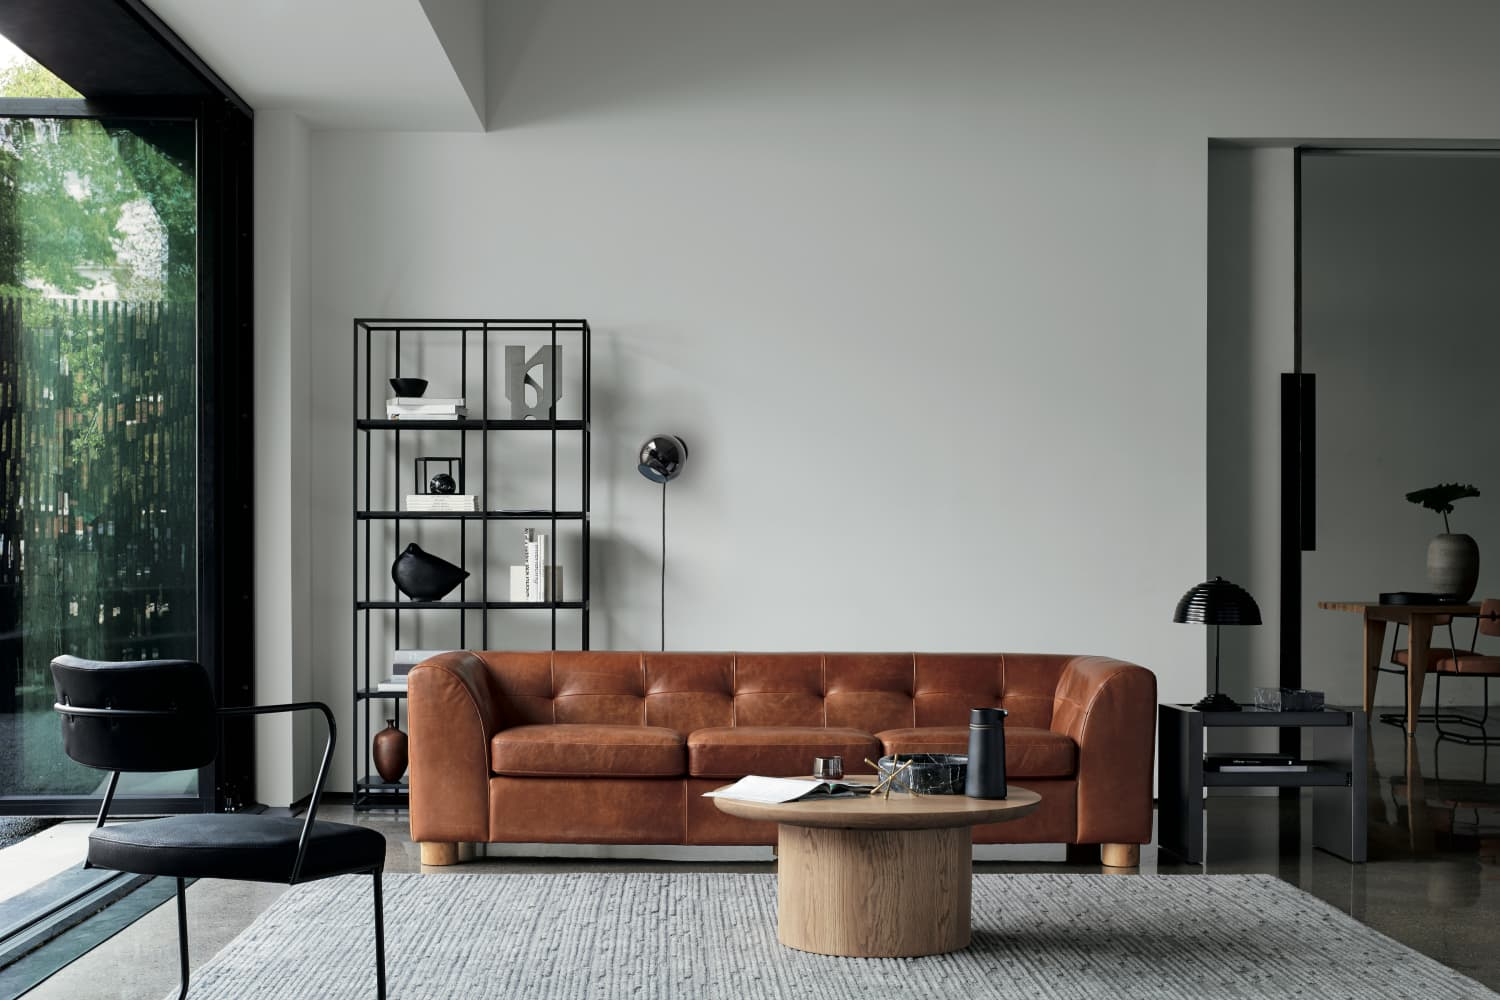 CB2's New Collab with GQ Looks Like it Was Made For a Bachelor Pad—and We're Into It